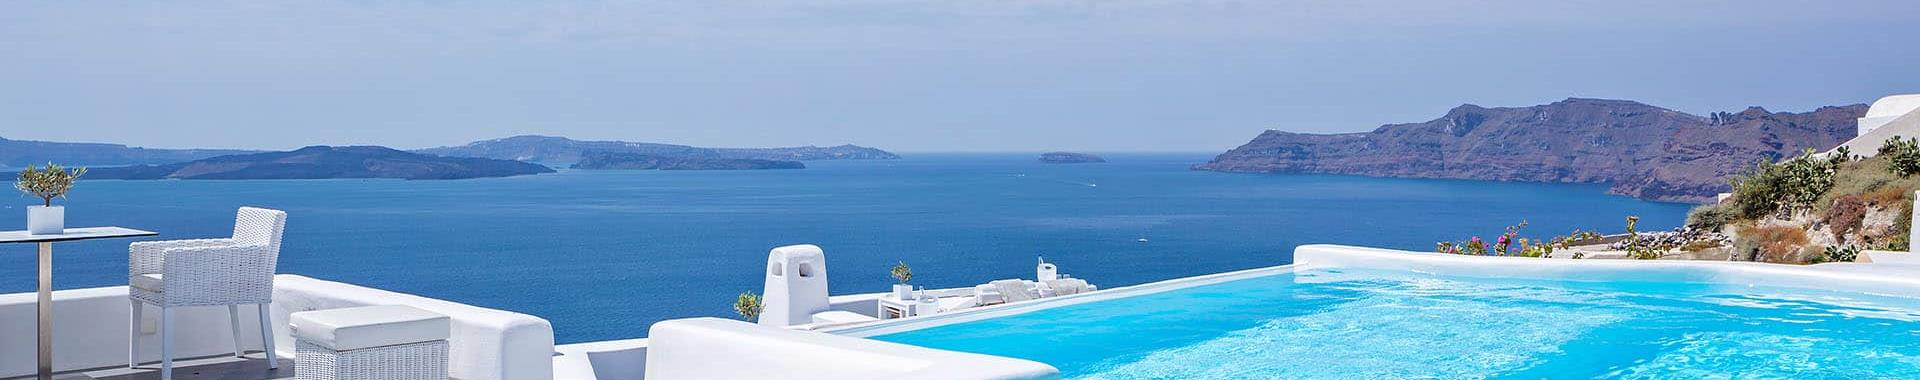 Oia or Akrotiri Santorini Hotels with Infinity Pool